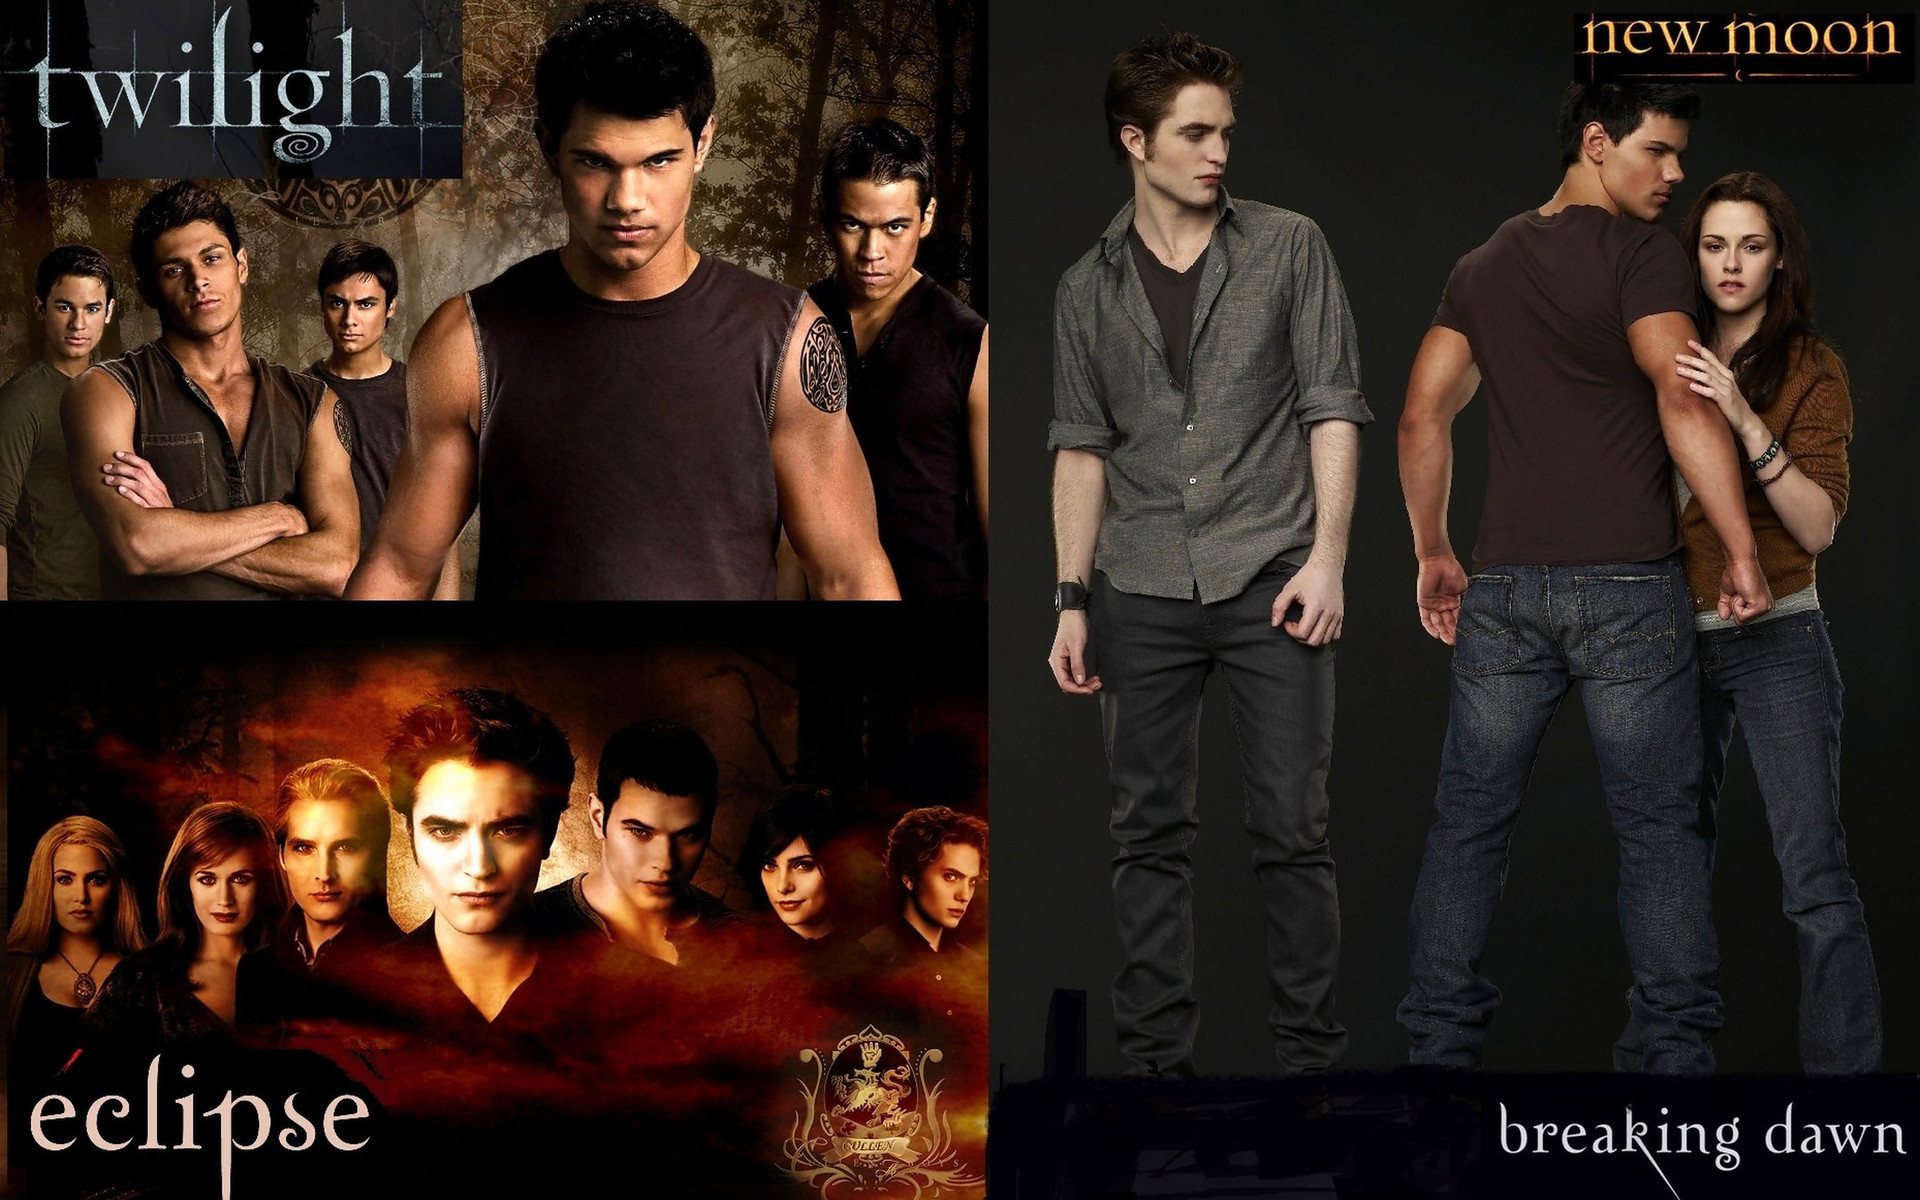 How many Twilight films